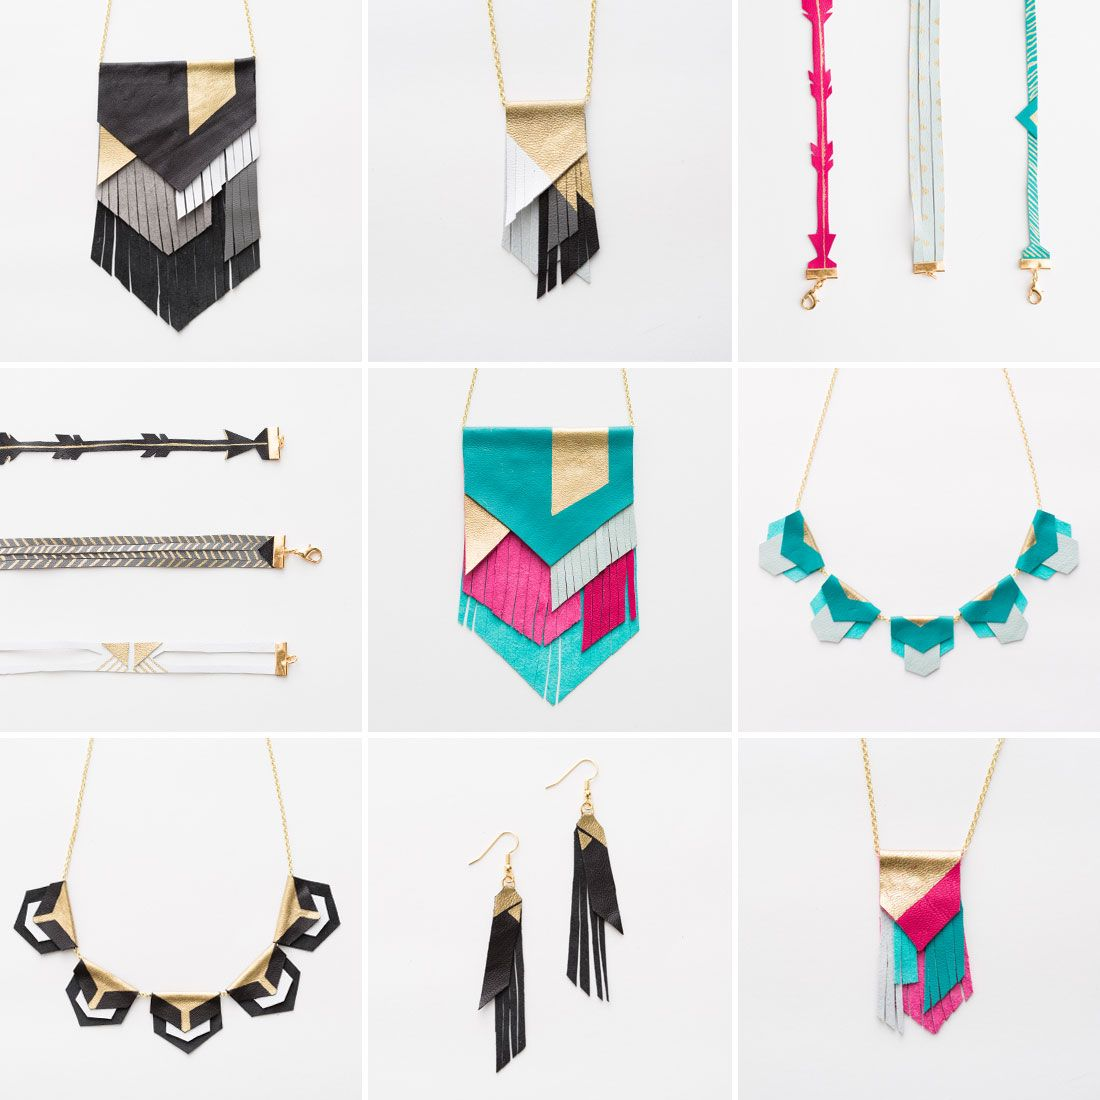 Make This Diy Leather Jewelry With Our New Kit  Jewelry Kits, Leather Jewelry, Body Jewelry Shop